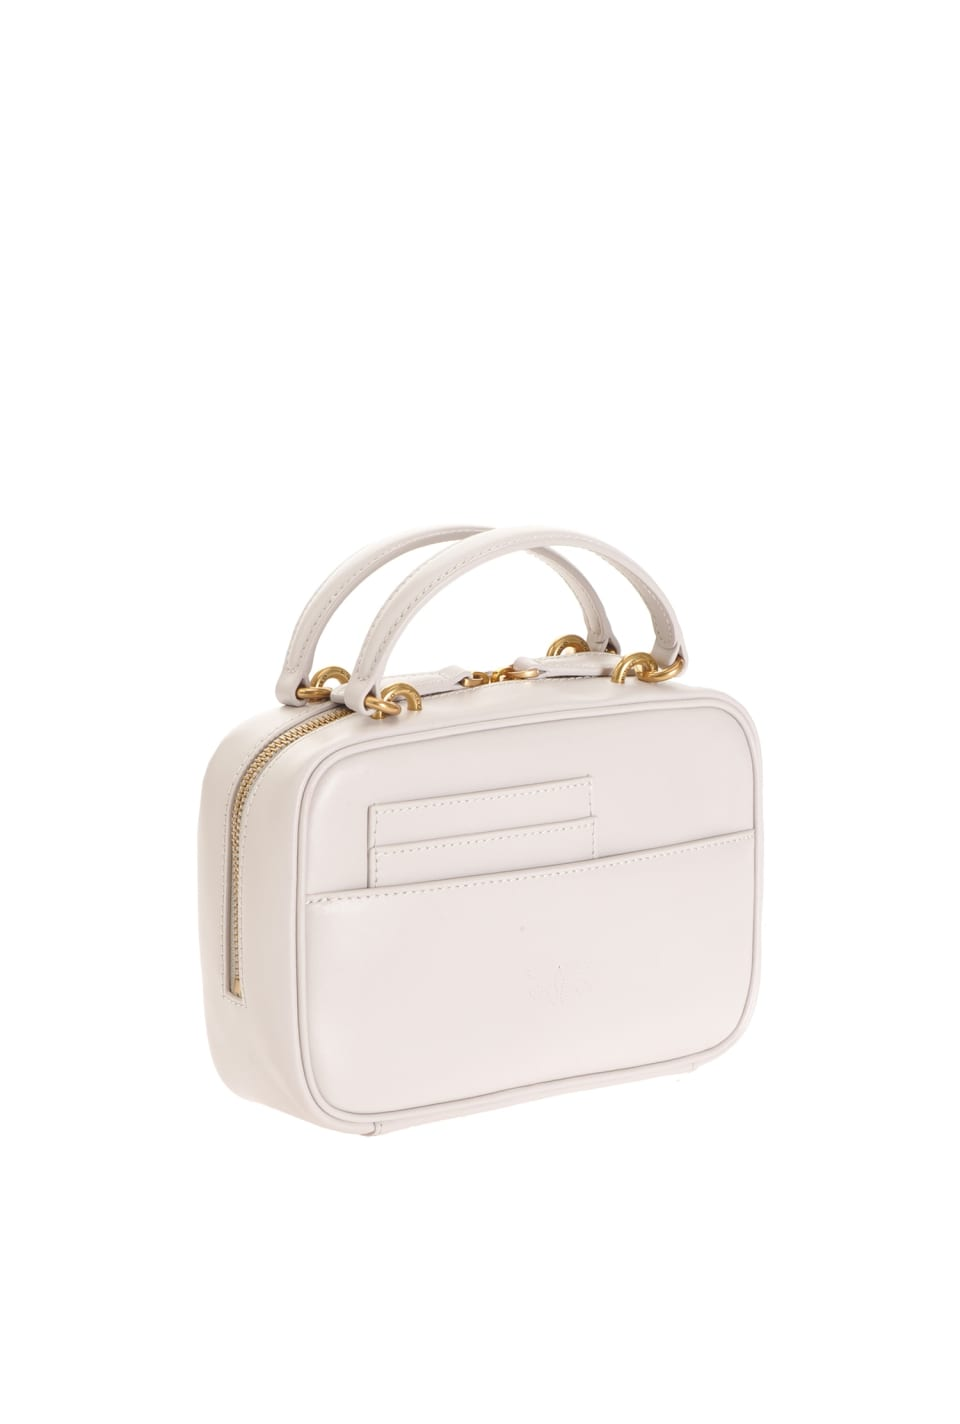 Mini Square Bag Simply in leather - Pinko